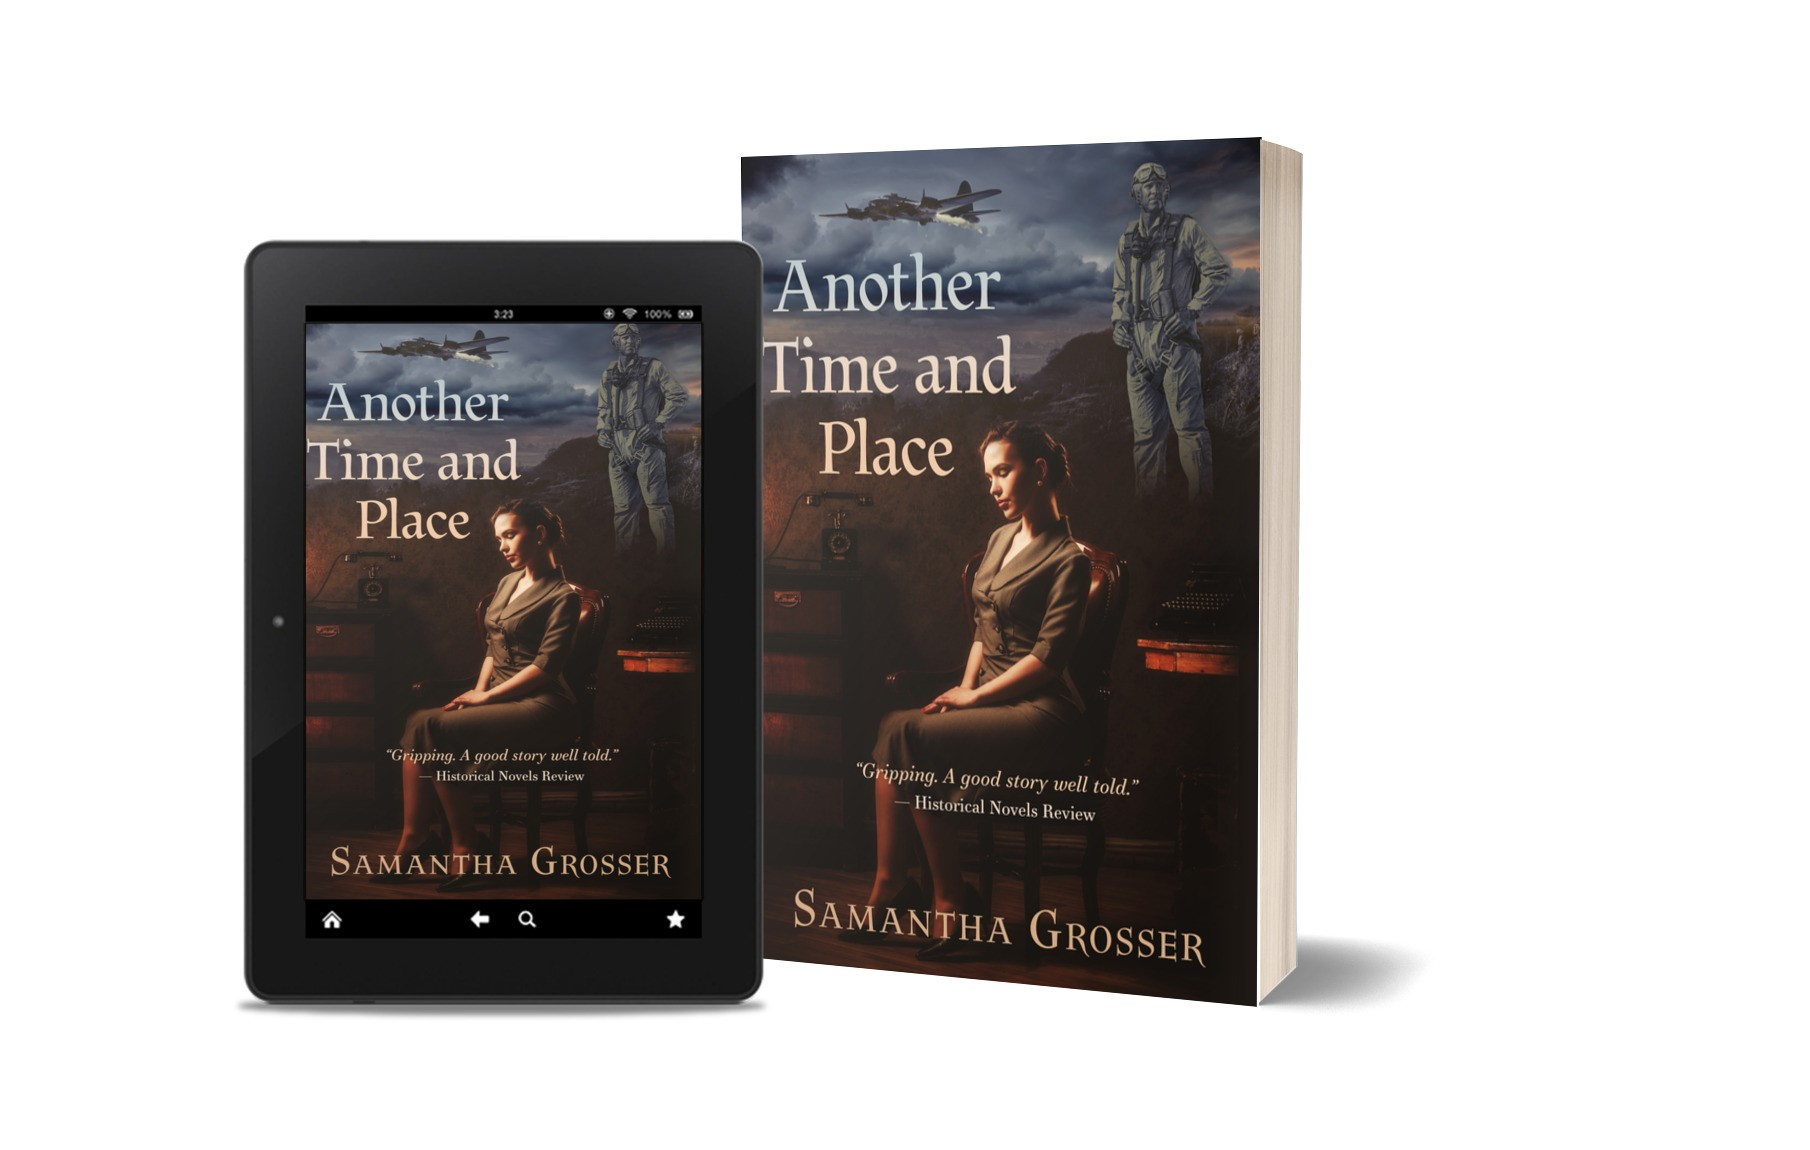 Another Time and Place - kindle and book.jpg